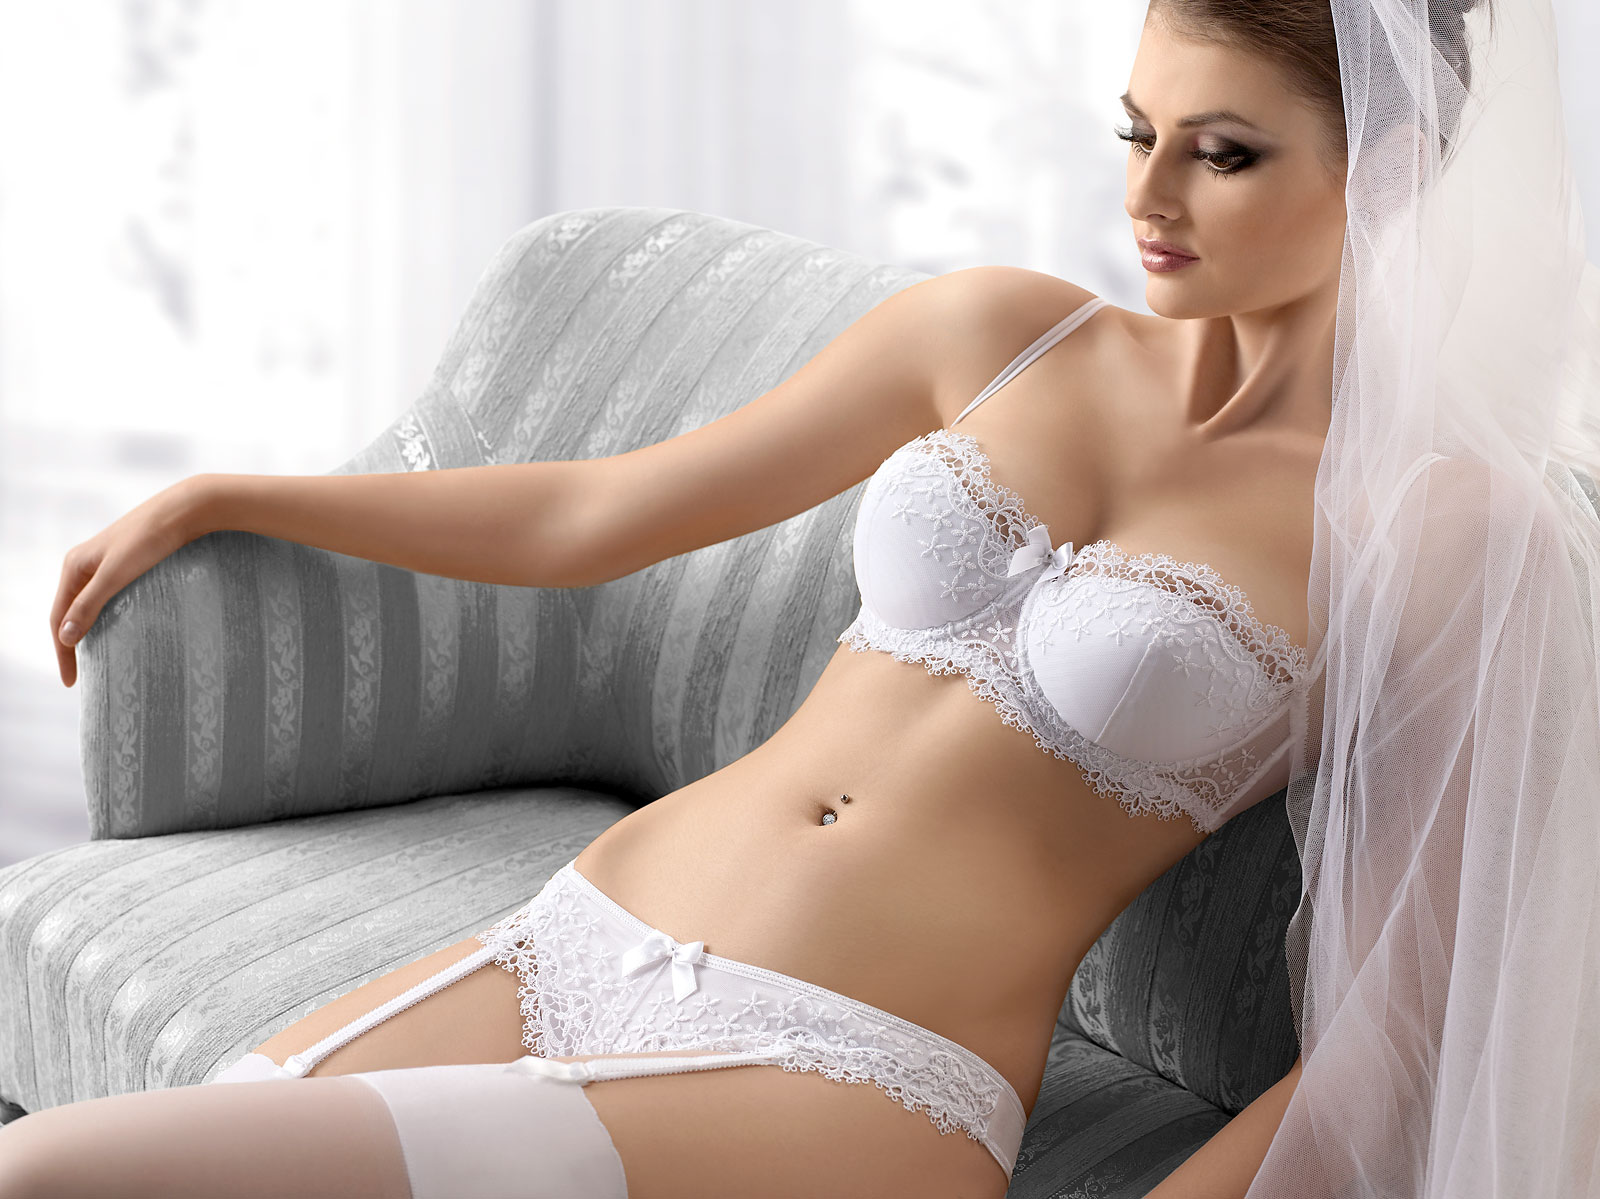 Bridal Lingerie Pillow Talk